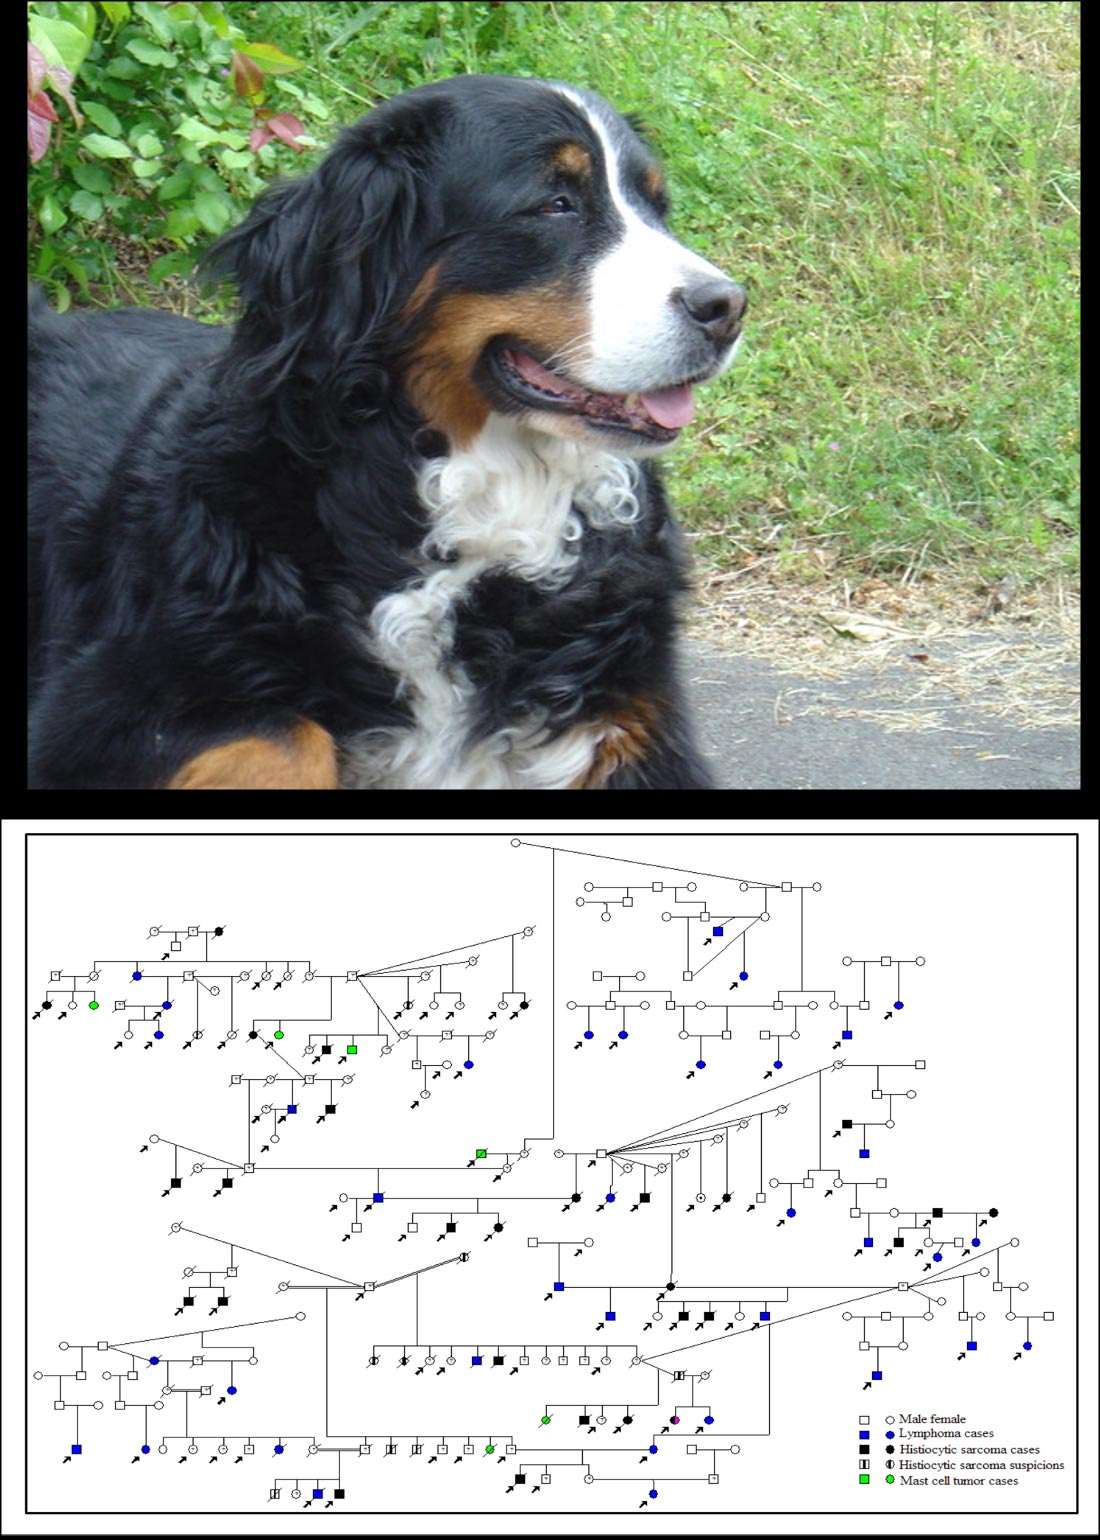 Cancer genetics of Bernese Mountain Dogs